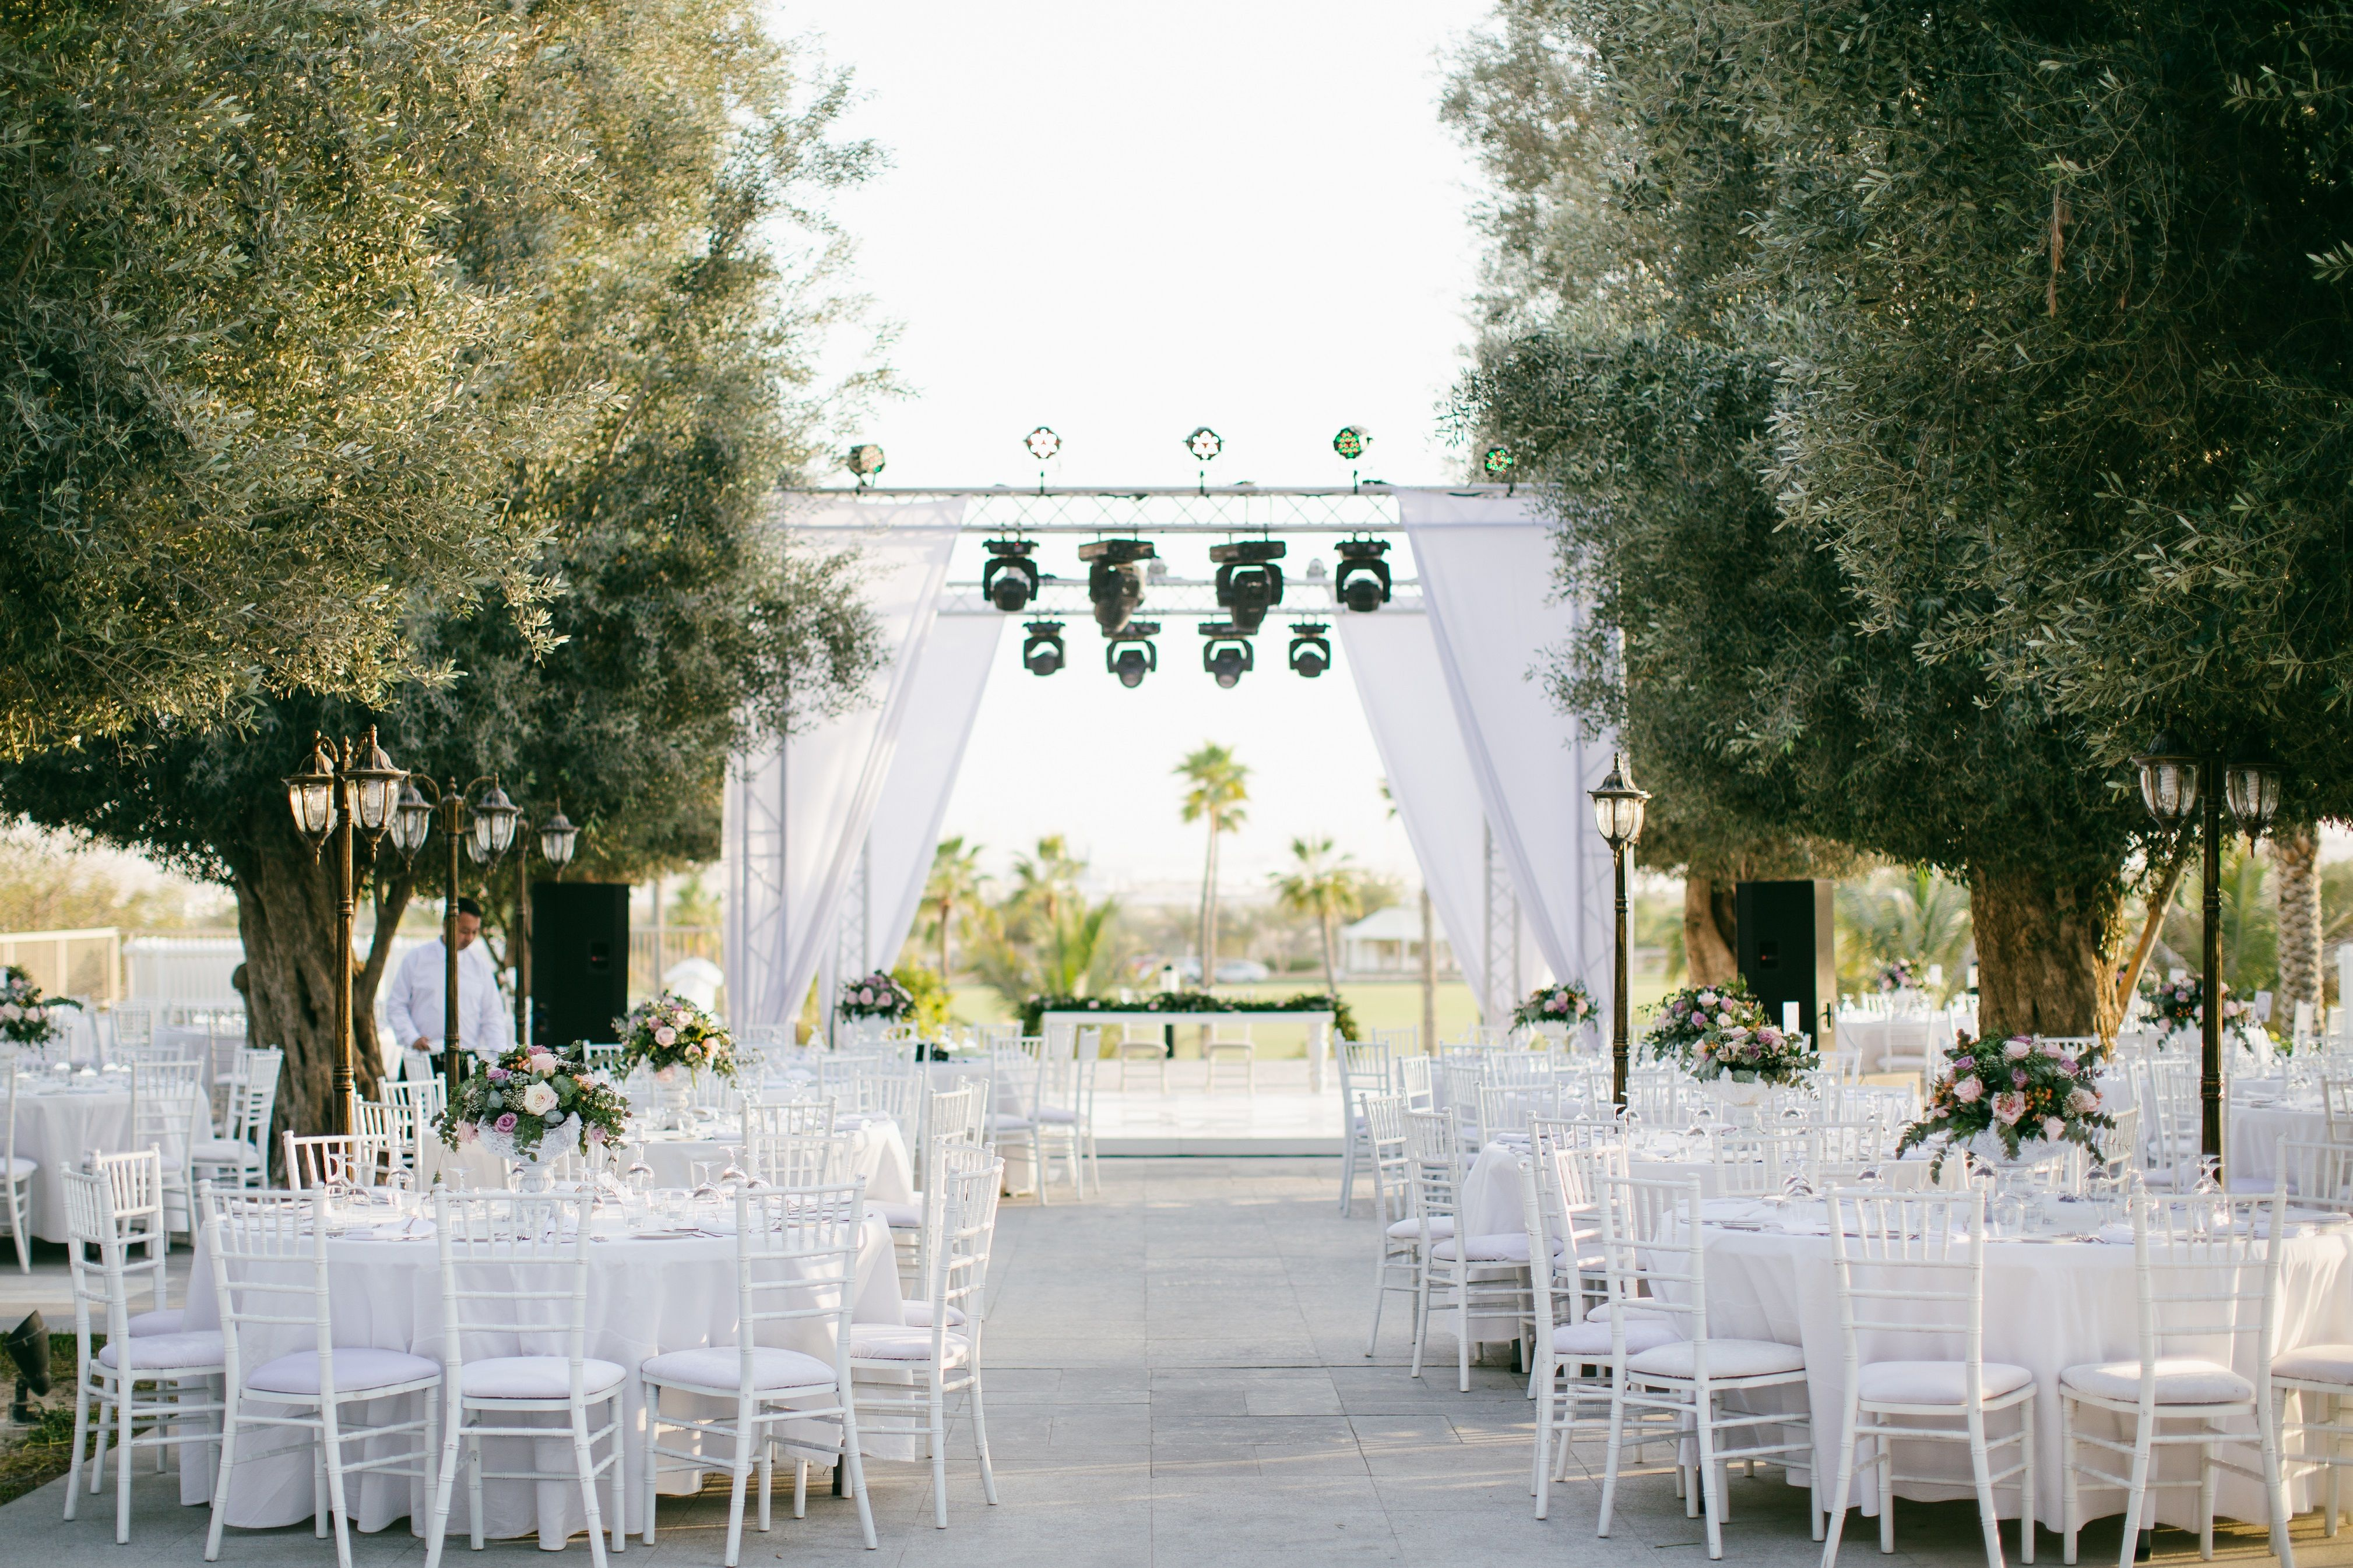 Outdoor Olive Garden Wedding Setting In Dubai White Round Tables And Rustic Chic